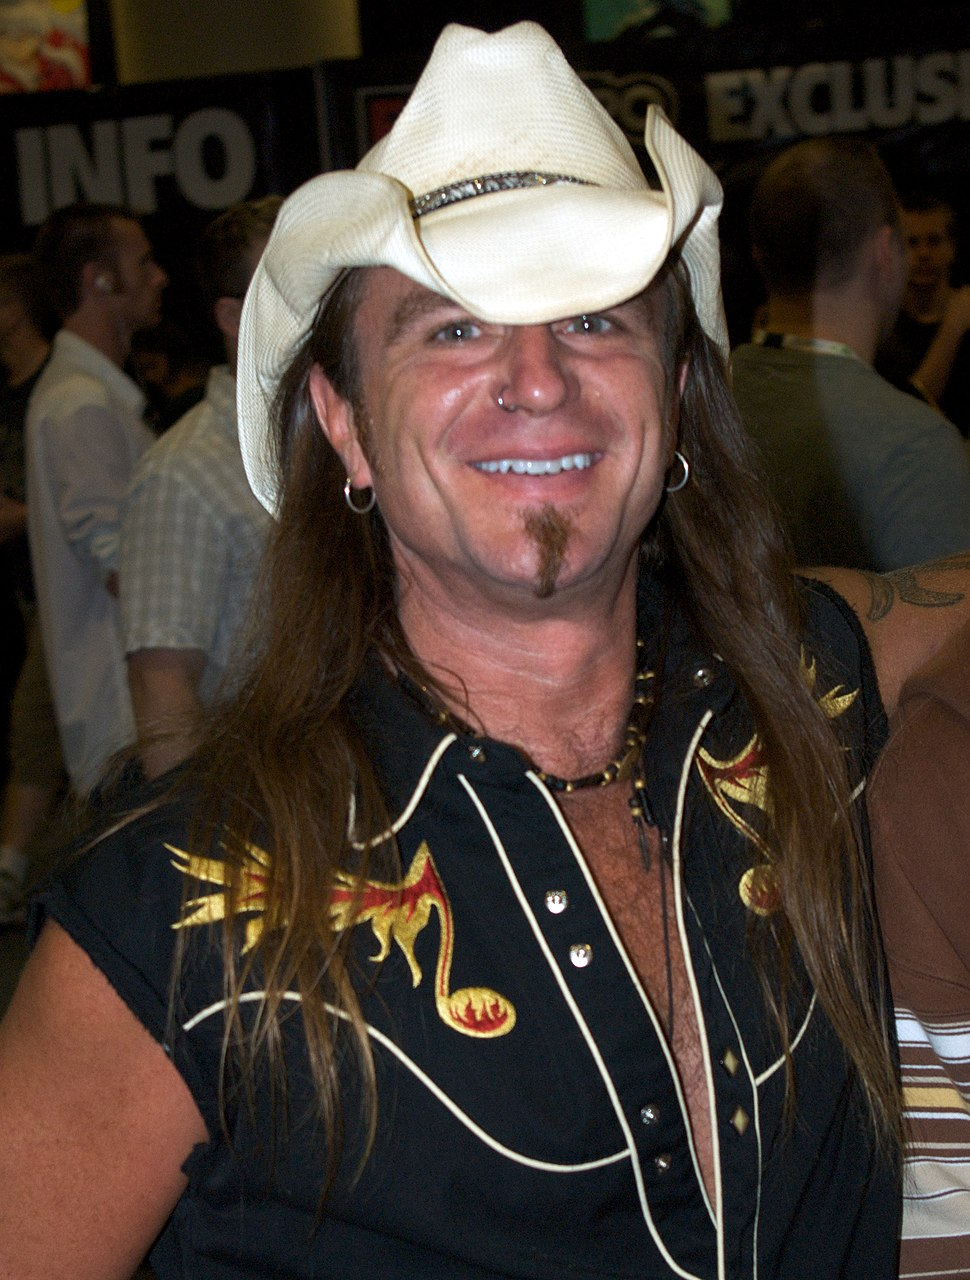 Scott McNeil at Fan Expo 2009